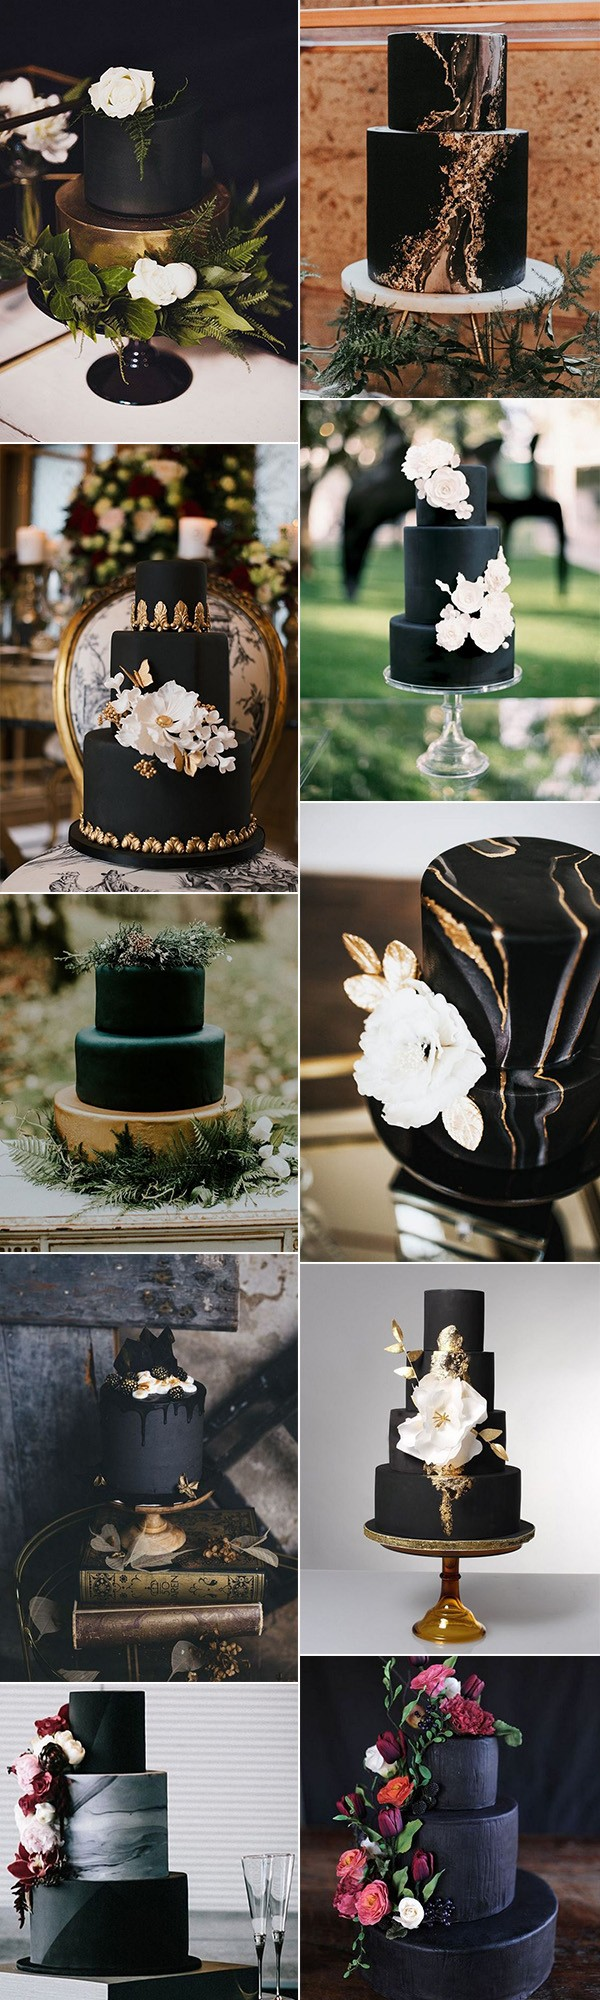 matte black wedding cakes for 2018 trends